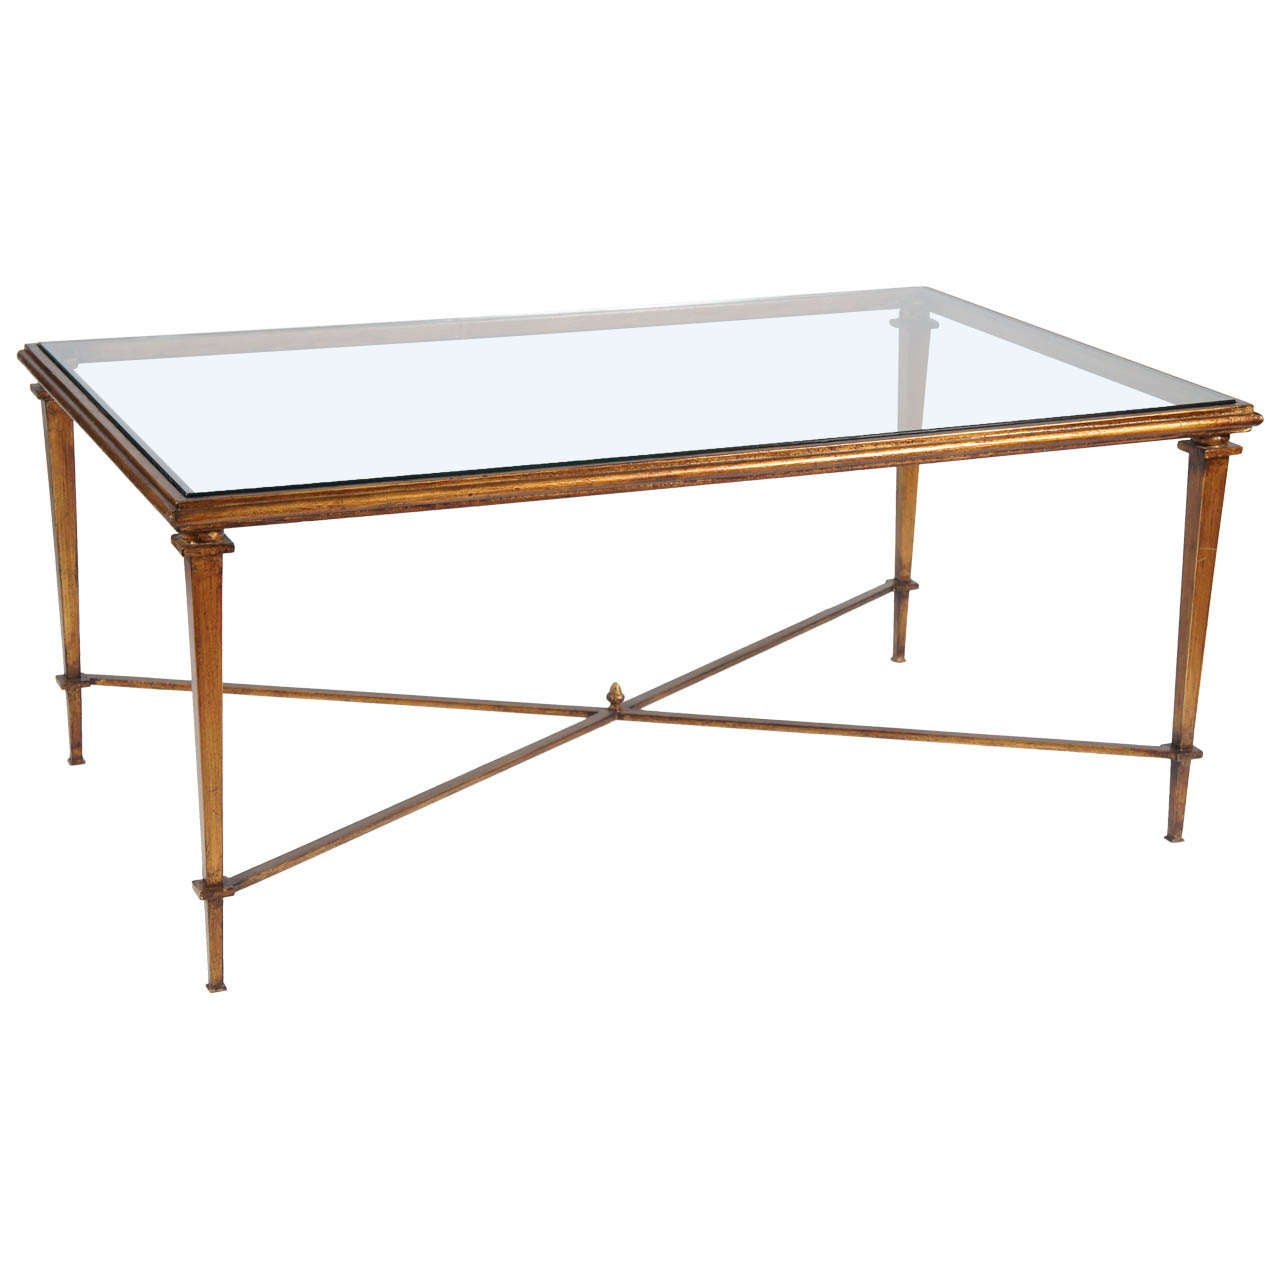 Neoclassical Style Metal Coffee Table With Glass Top For Sale At 1stdibs